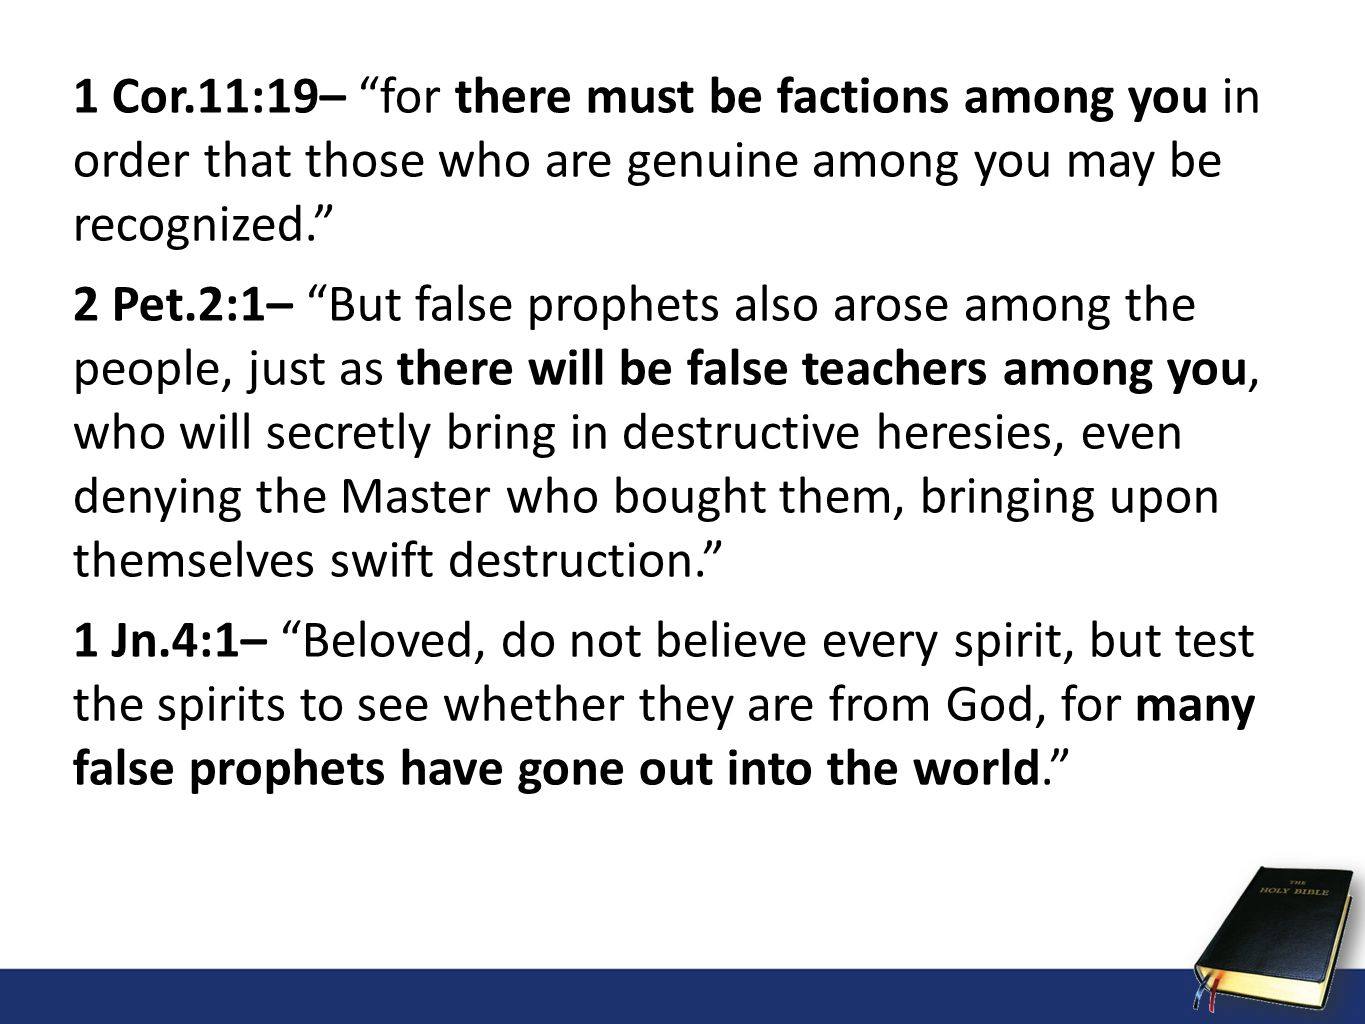 1 Cor.11:19– for there must be factions among you in order that those who are genuine among you may be recognized. 2 Pet.2:1– But false prophets also